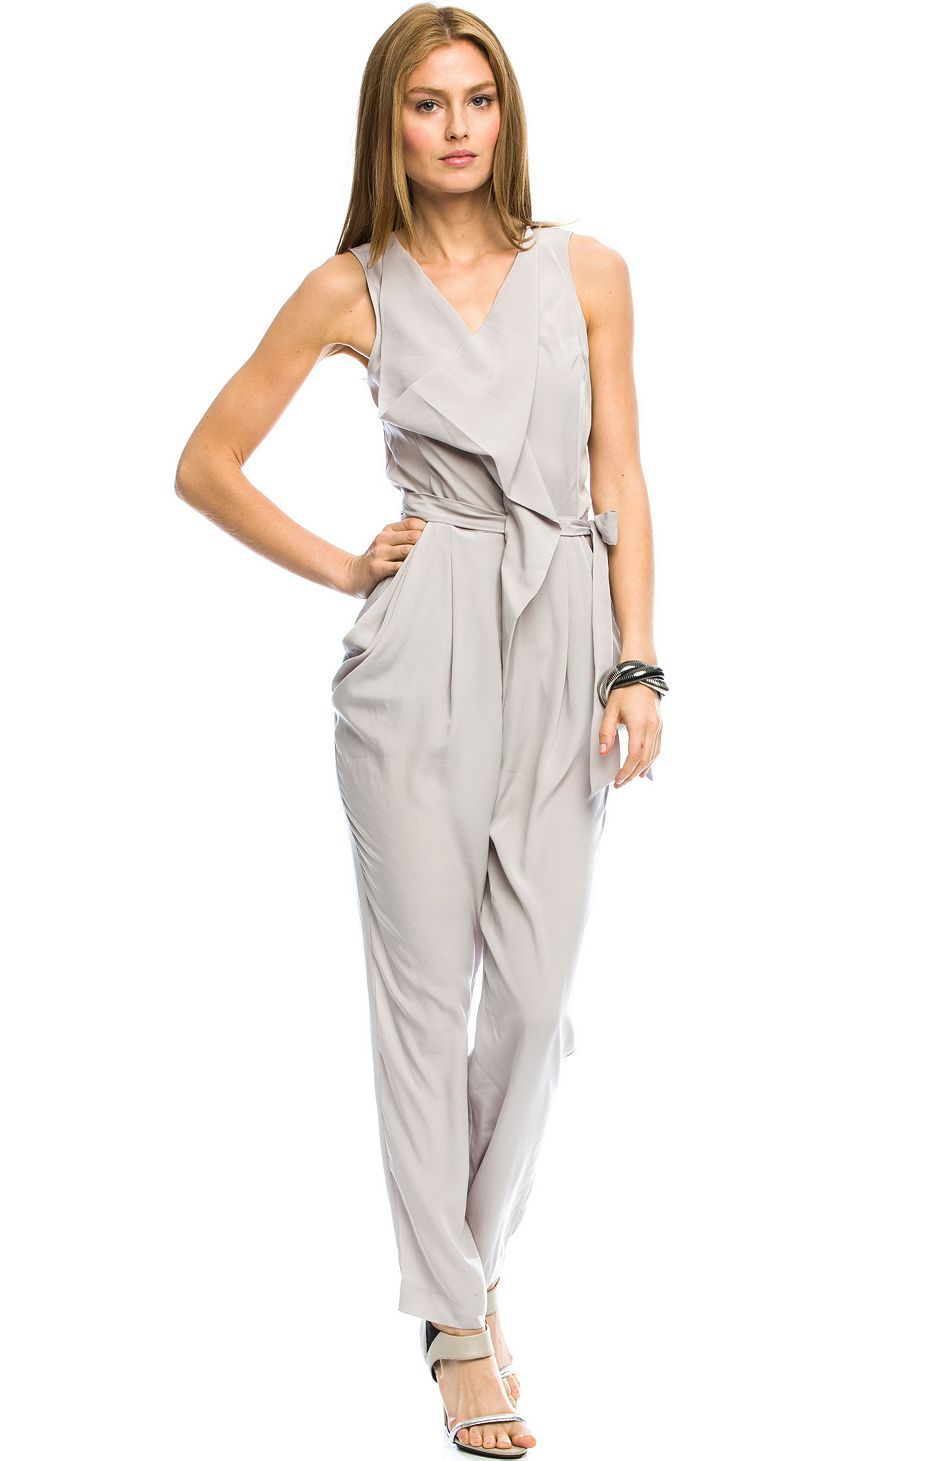 e90dad6eae94 Cowl Neck Jumpsuit - Jumpsuits - Womens - Armani Exchange Online Clothing  Stores